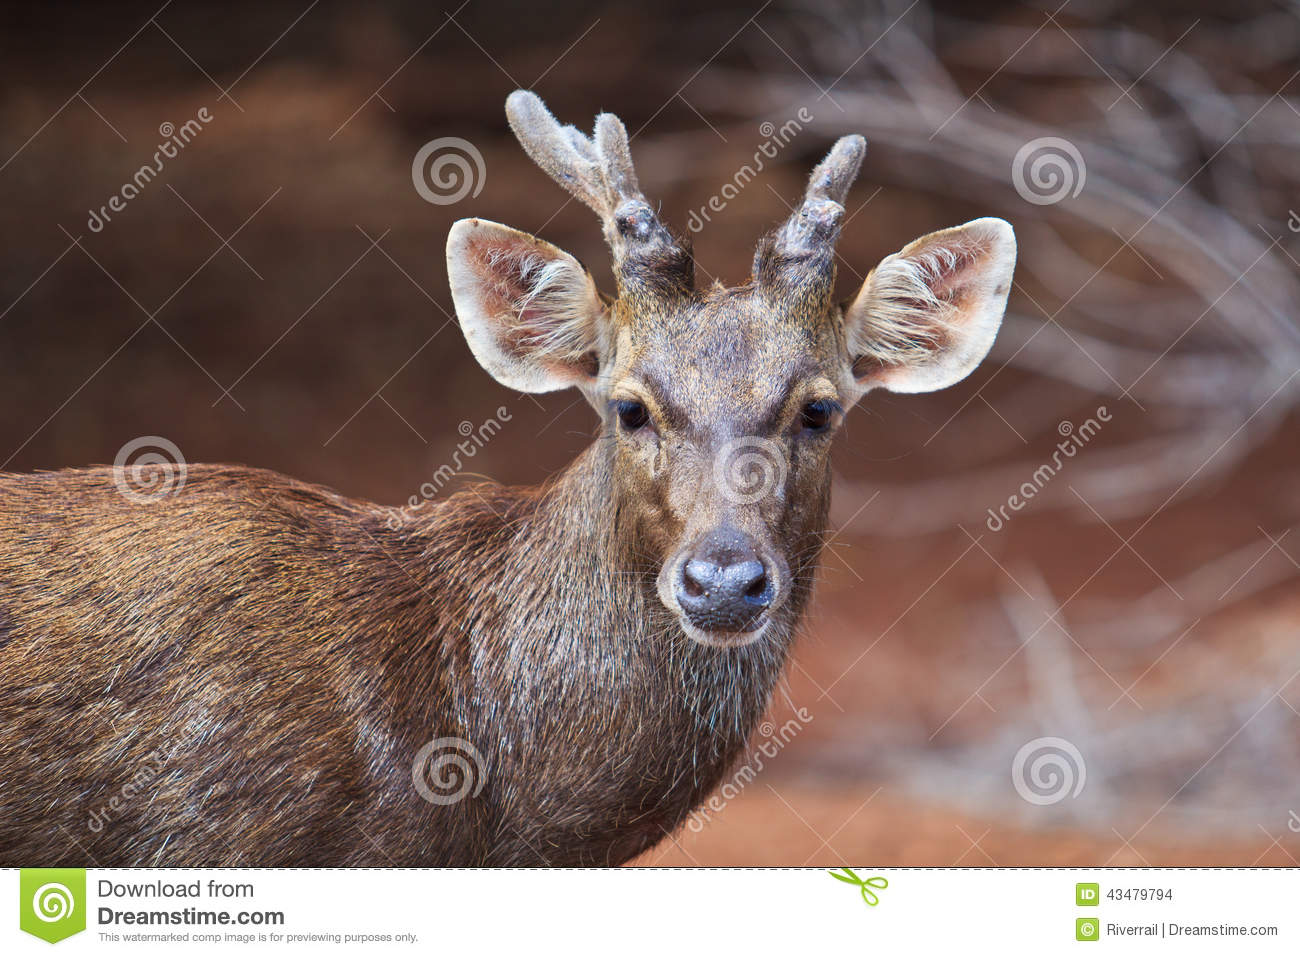 Female reindeer grows and shed new antlers each year.